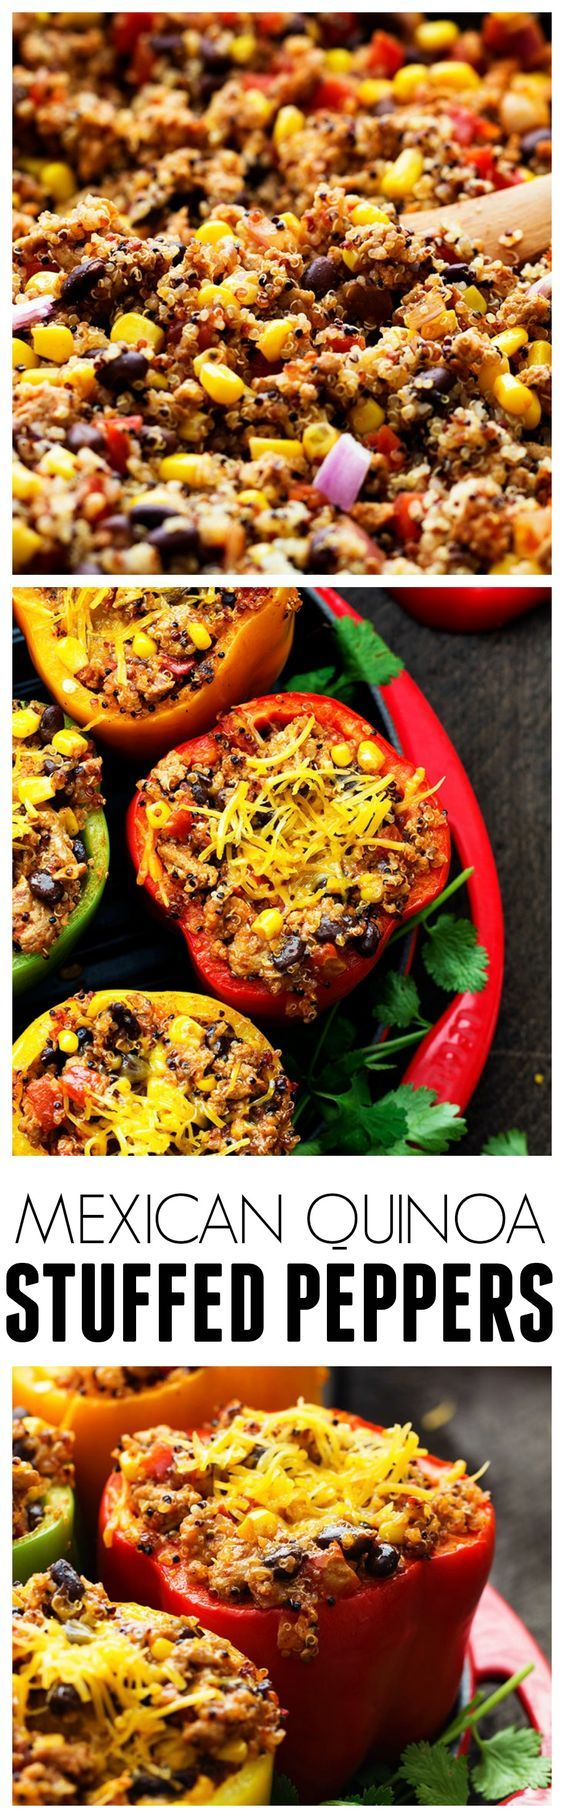 Mexican Quinoa Stuffed Peppers are full of flavor and so healthy for you! The added quinoa is amazing!